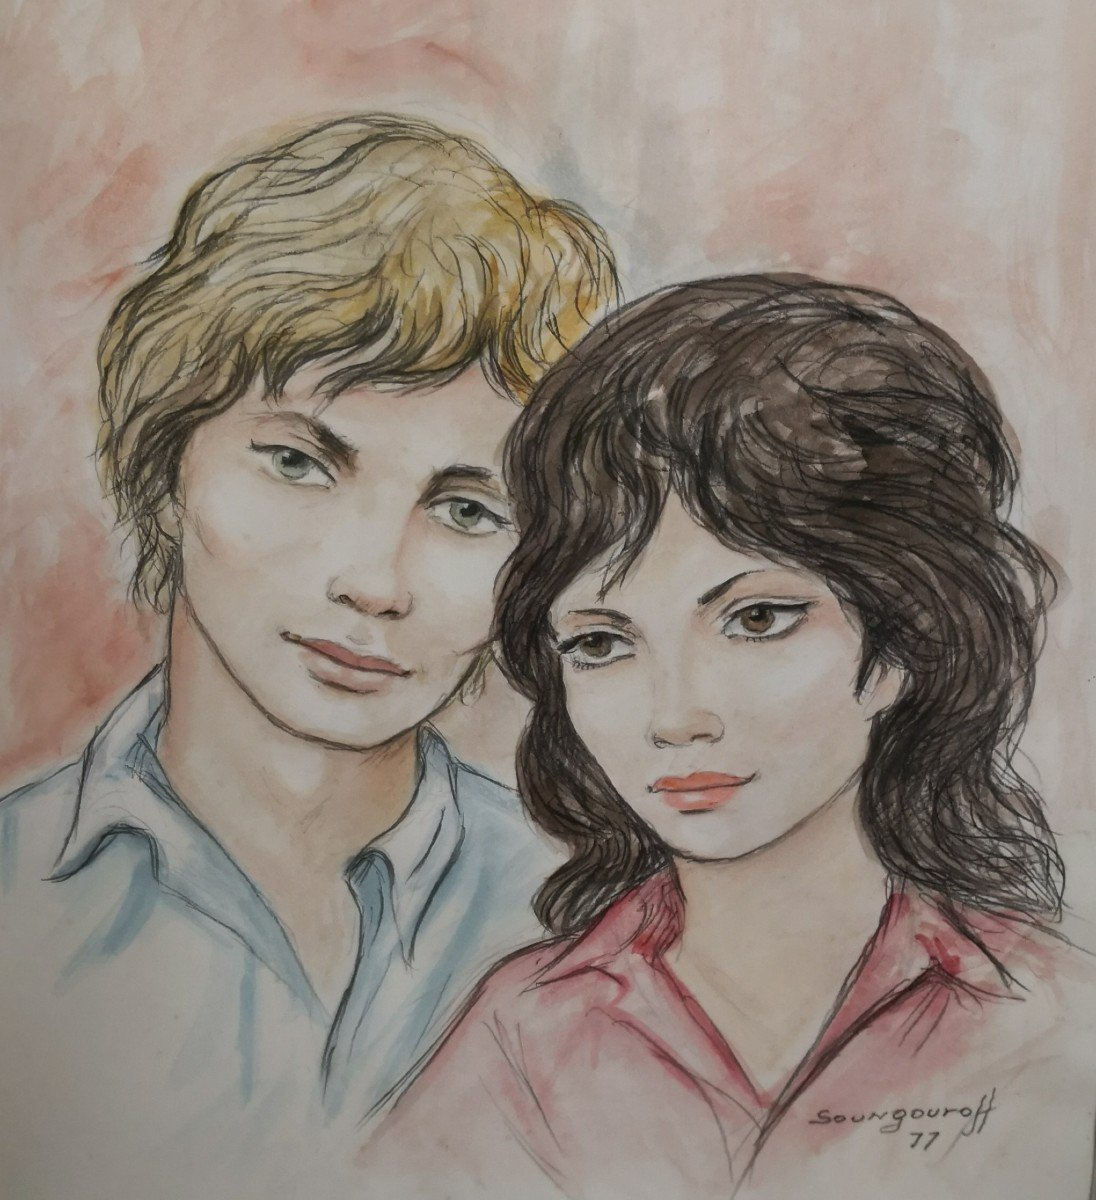 Watercolor Drawing Couple Signed And Dated Soungouroff 1977-photo-3